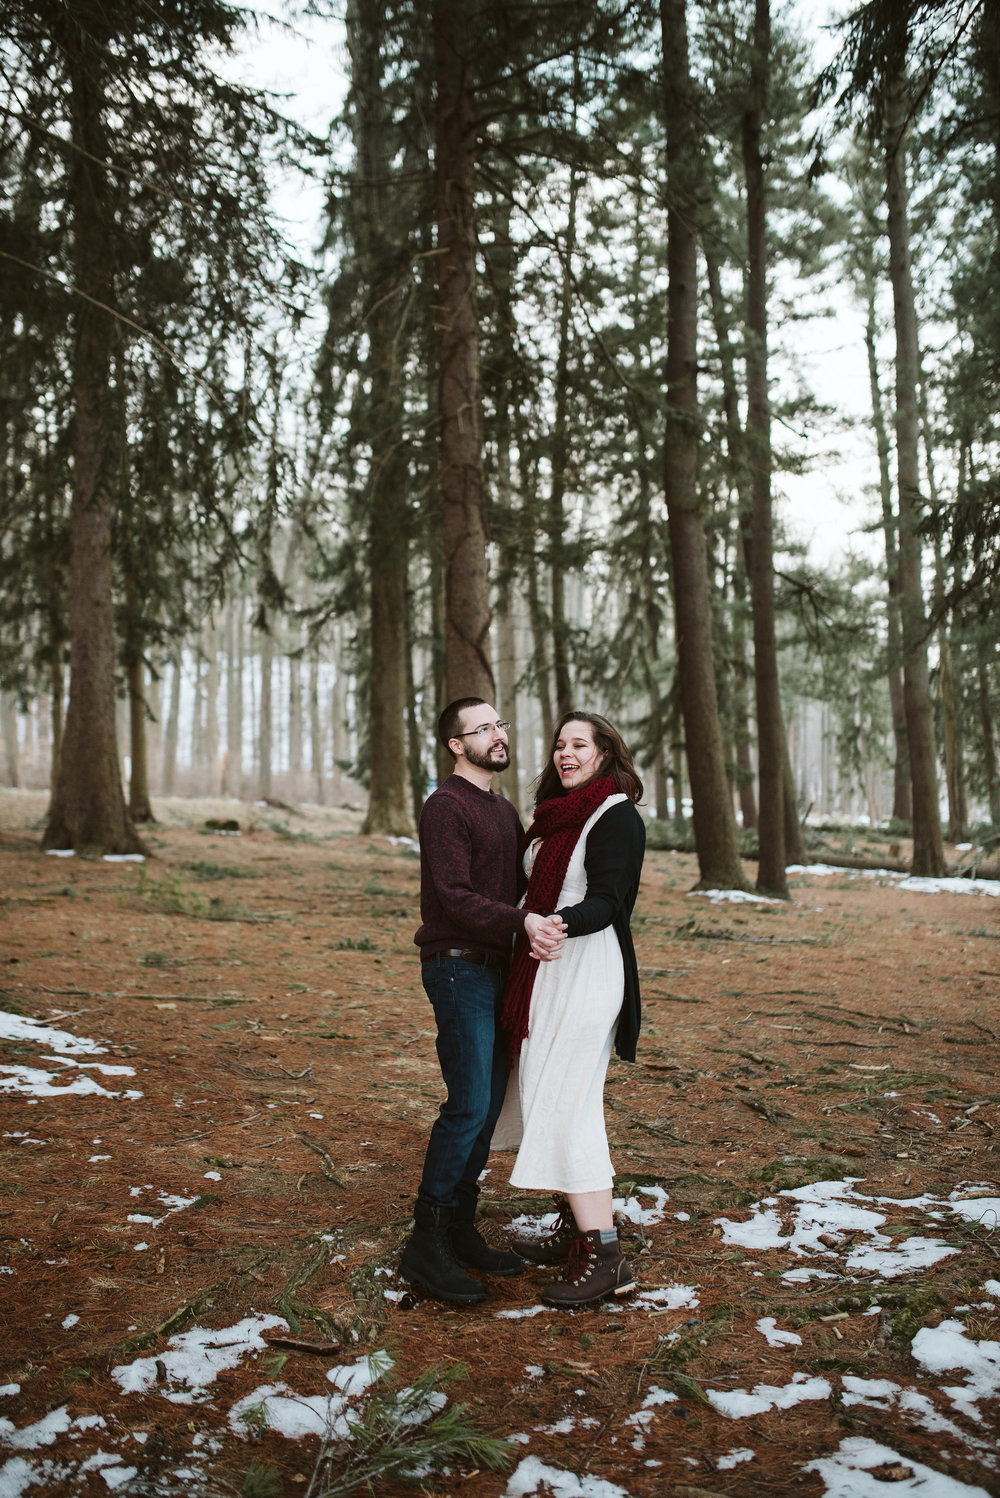 Baltimore County, Loch Raven Reservoir, Maryland Wedding Photographer, Winter, Engagement Photos, Nature, Romantic, Clean and Classic, Couple Dancing Together in the Forest, White Dress with Hiking Boots